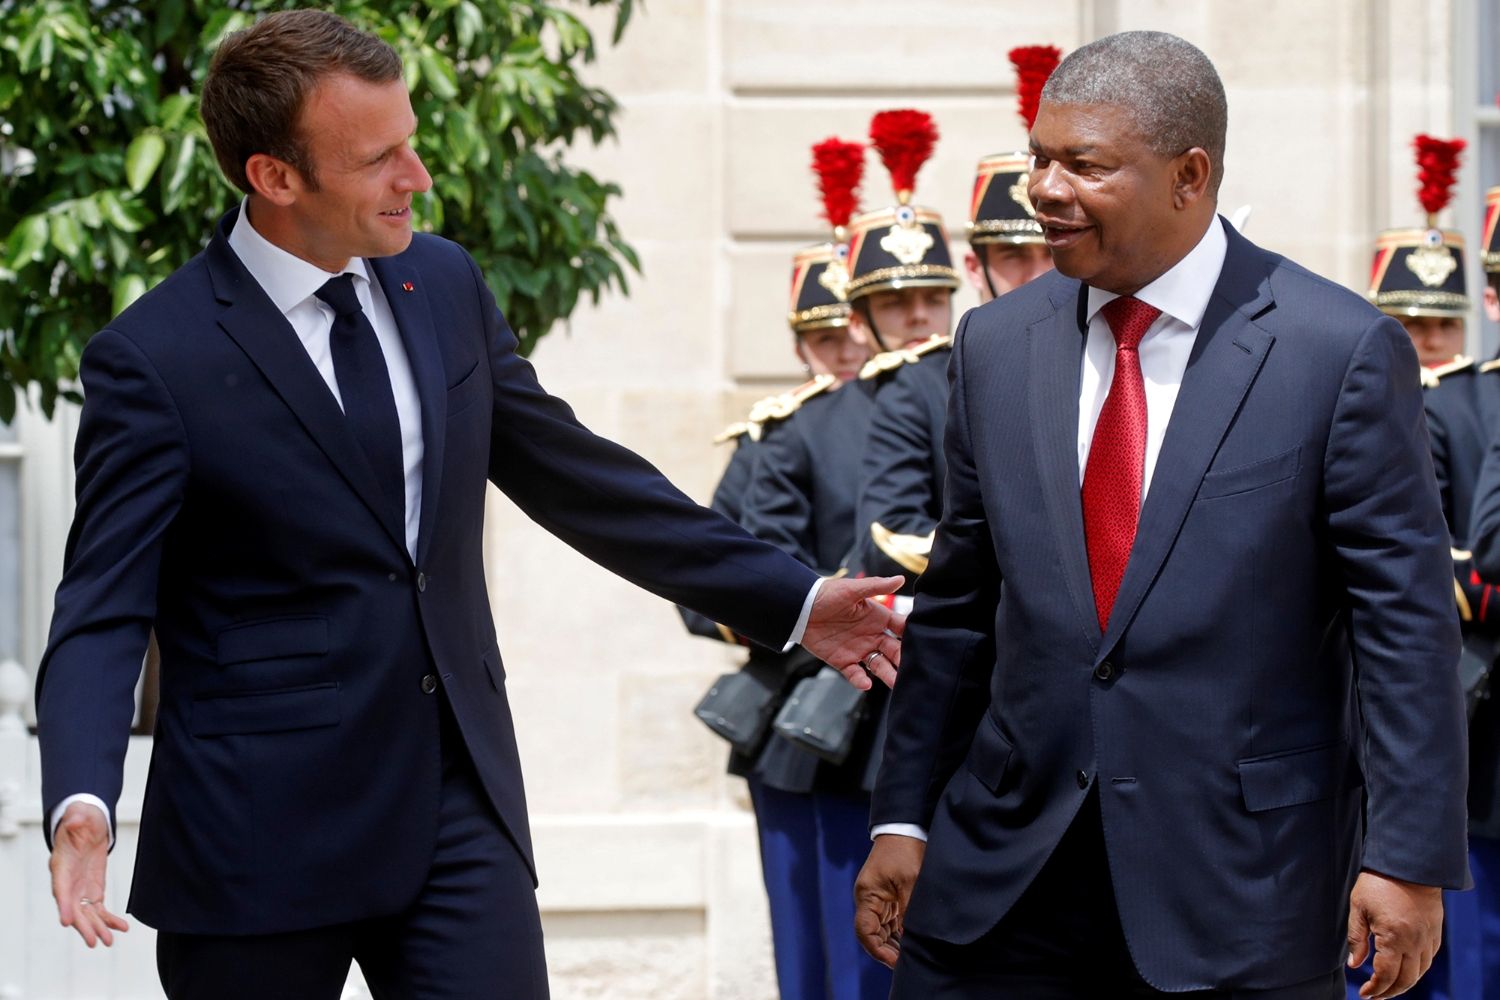 French President Emmanuel Macron and his Angolan counterpart Joao Lourenço, in 2018.